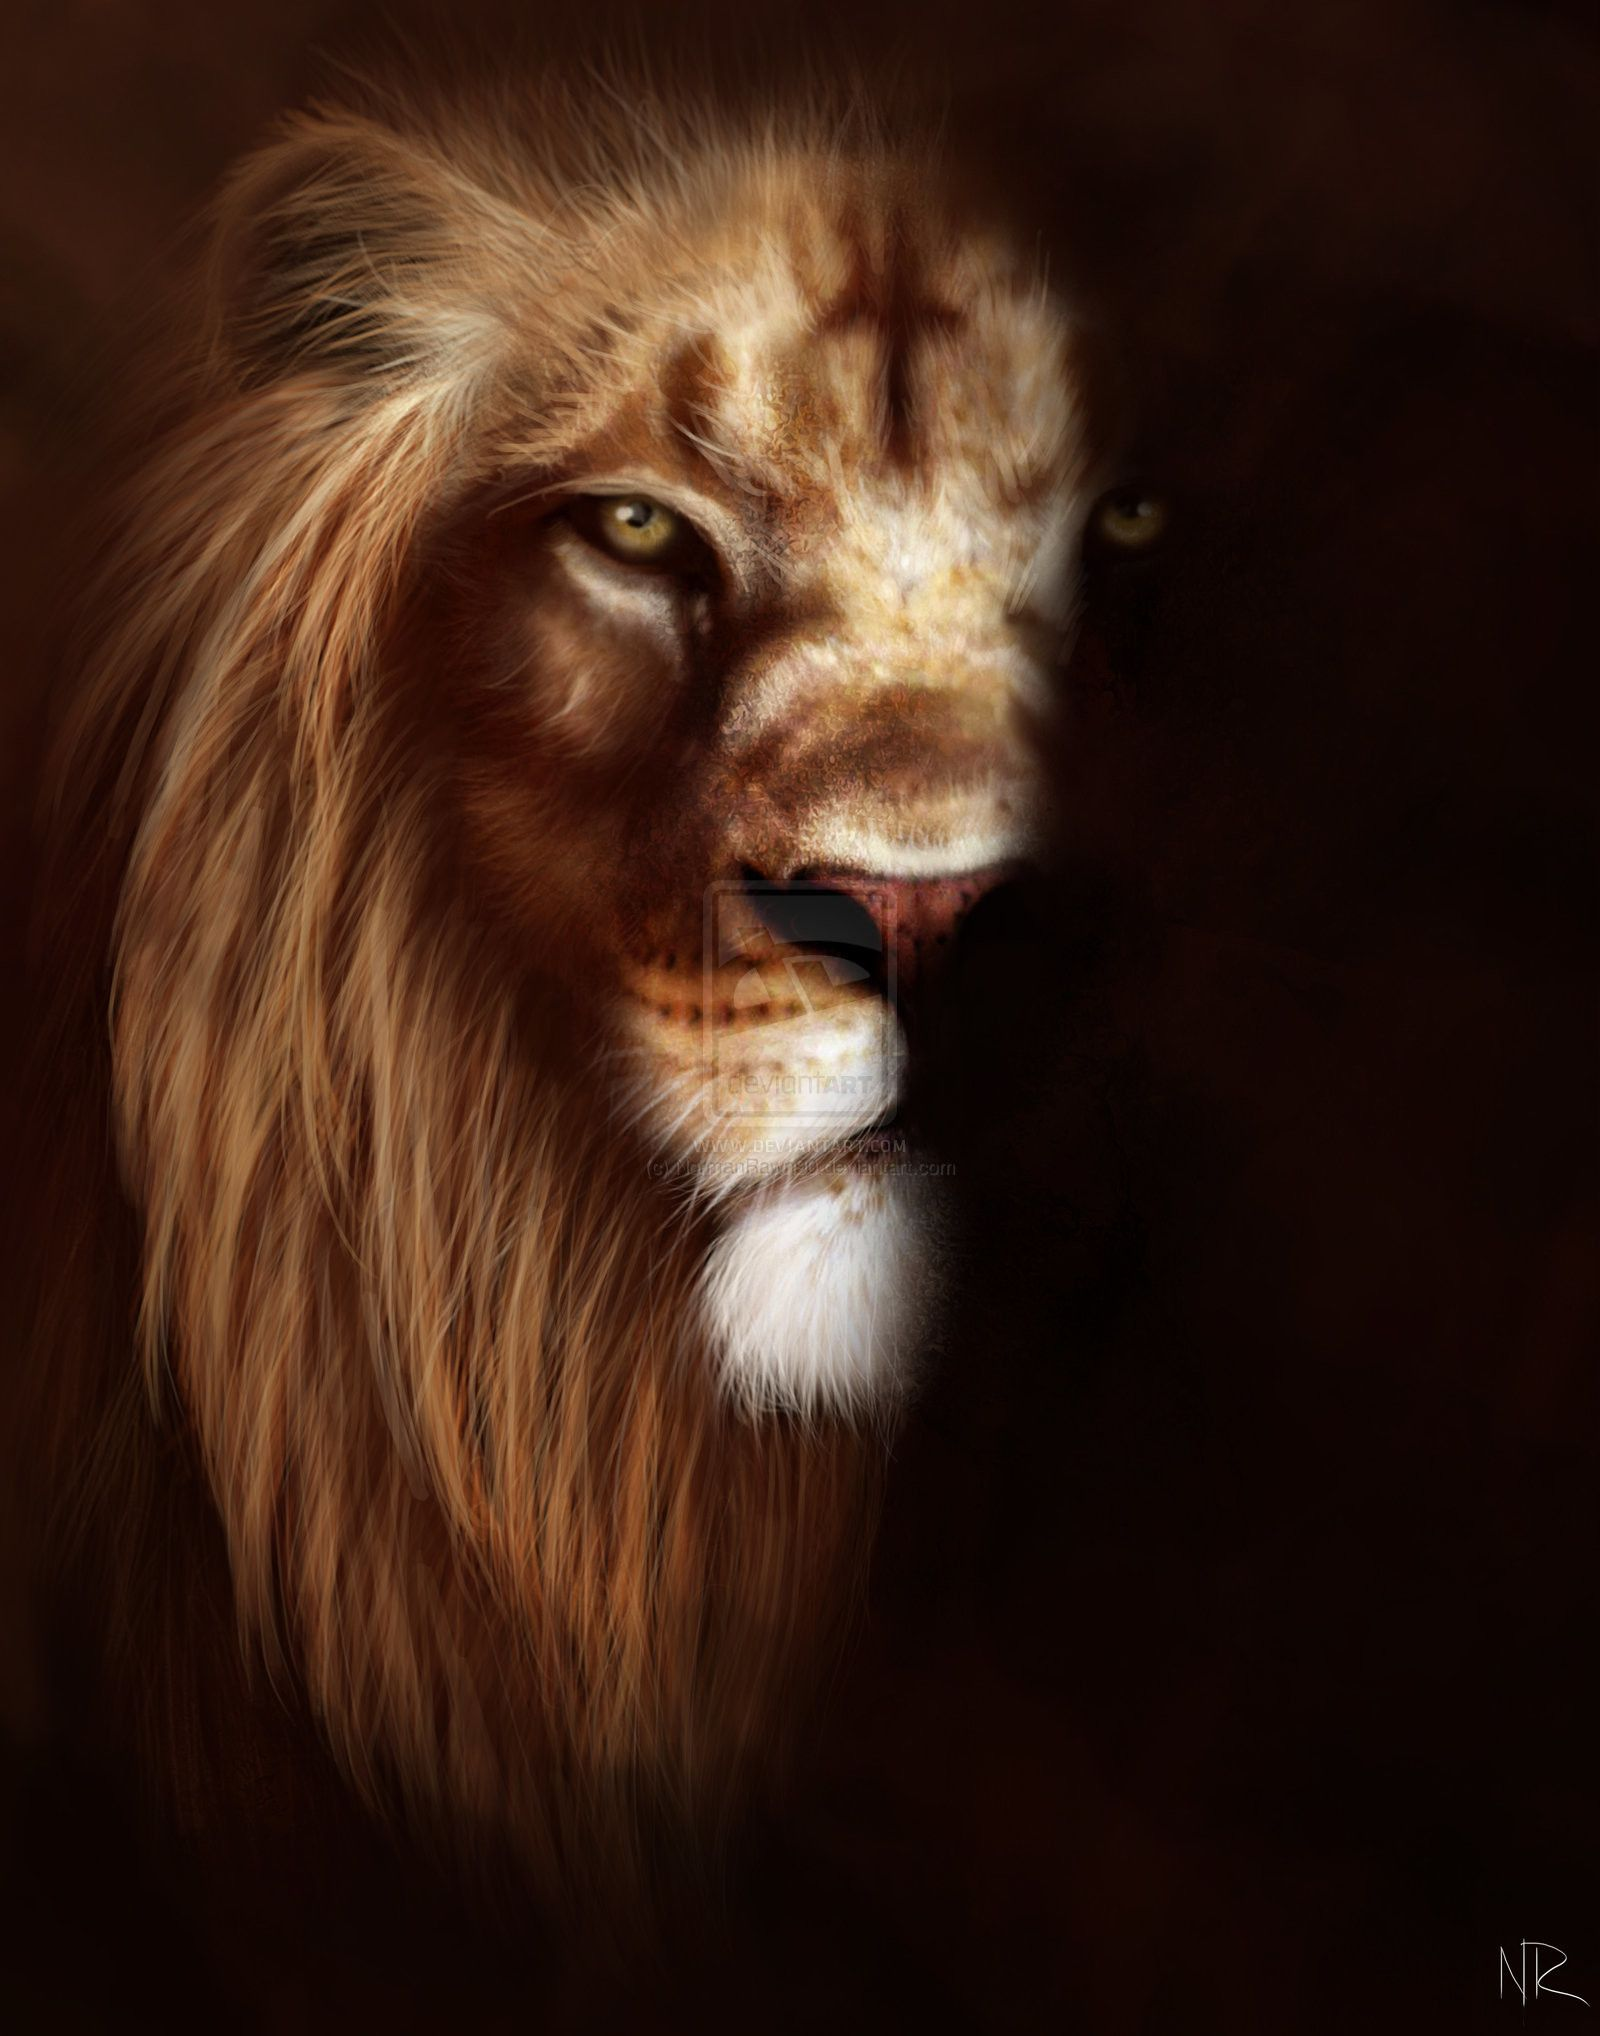 Angry Lion Wallpapers Top Free Angry Lion Backgrounds Wallpaperaccess